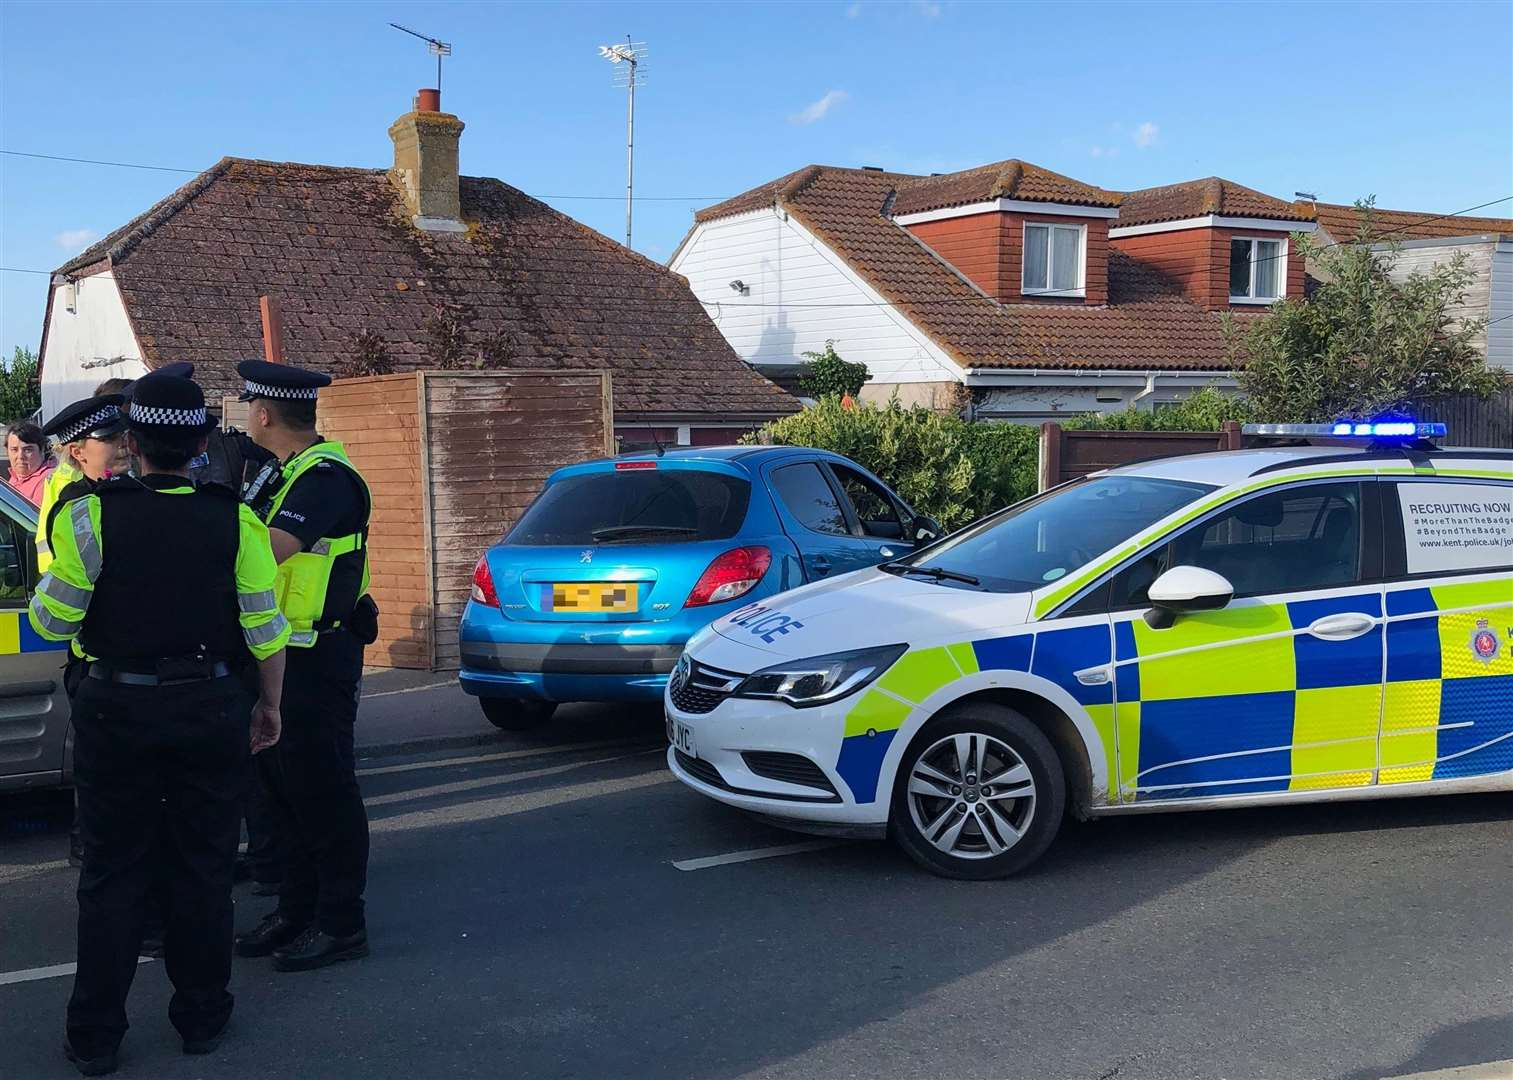 The car crashed into a fence in Leysdown on Saturday